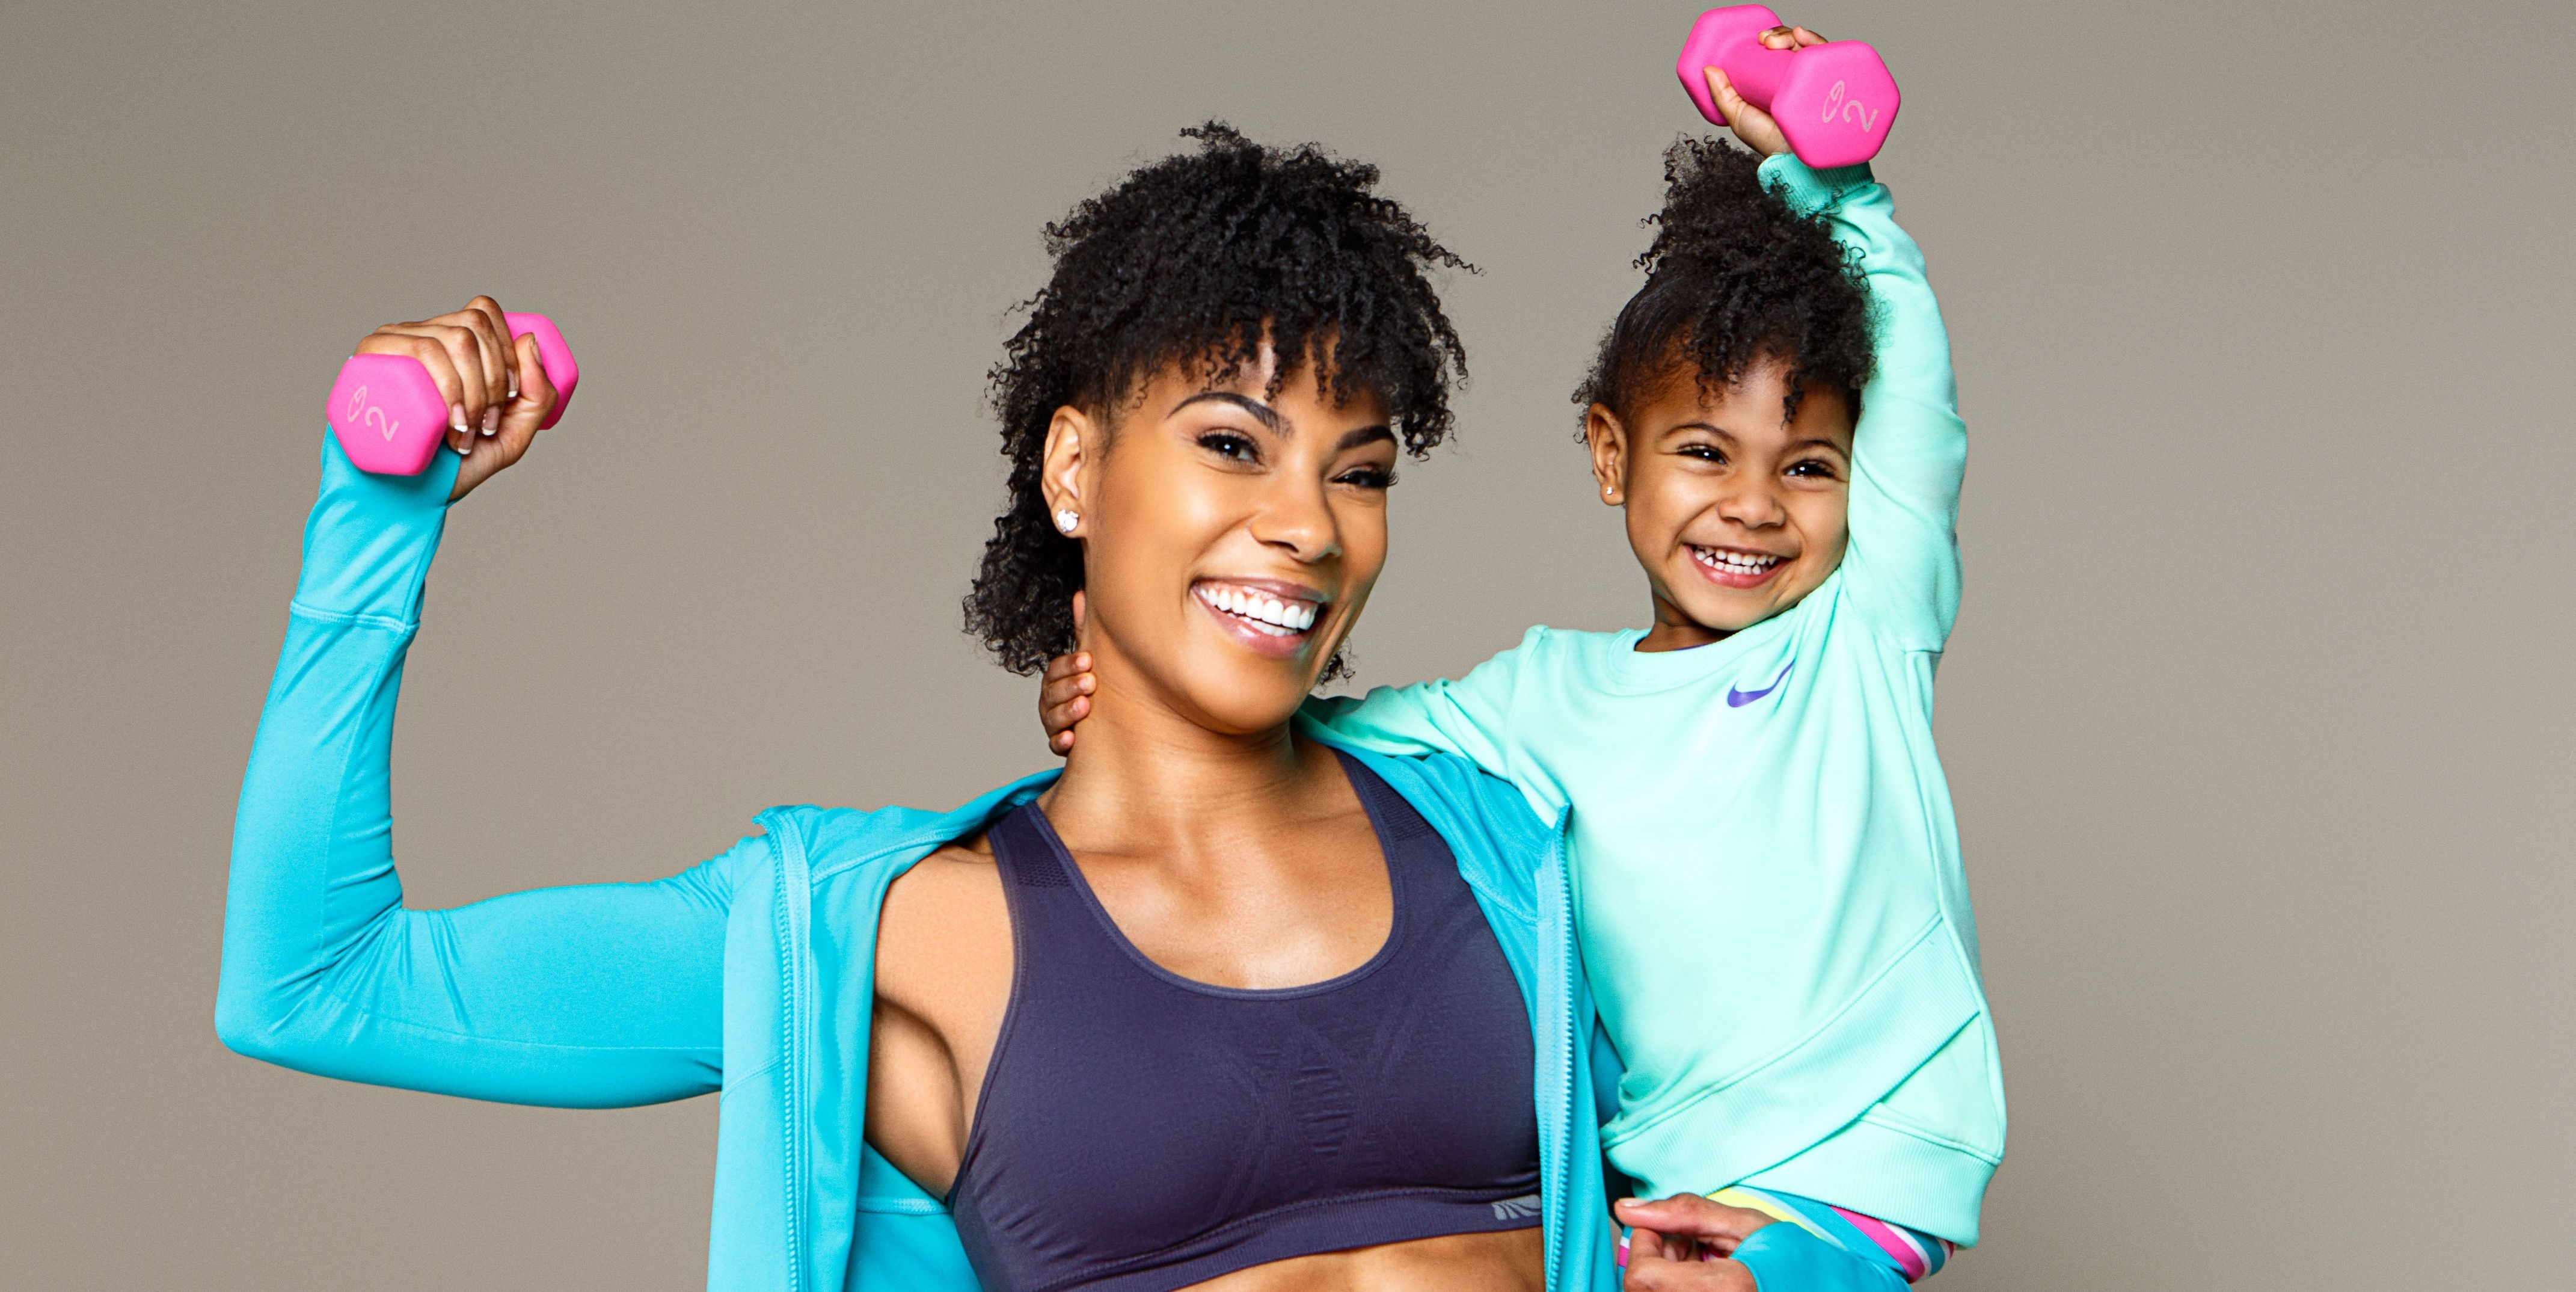 This 2-Year-Old Working Out With Her Mom Is Officially Too Cute to Handle